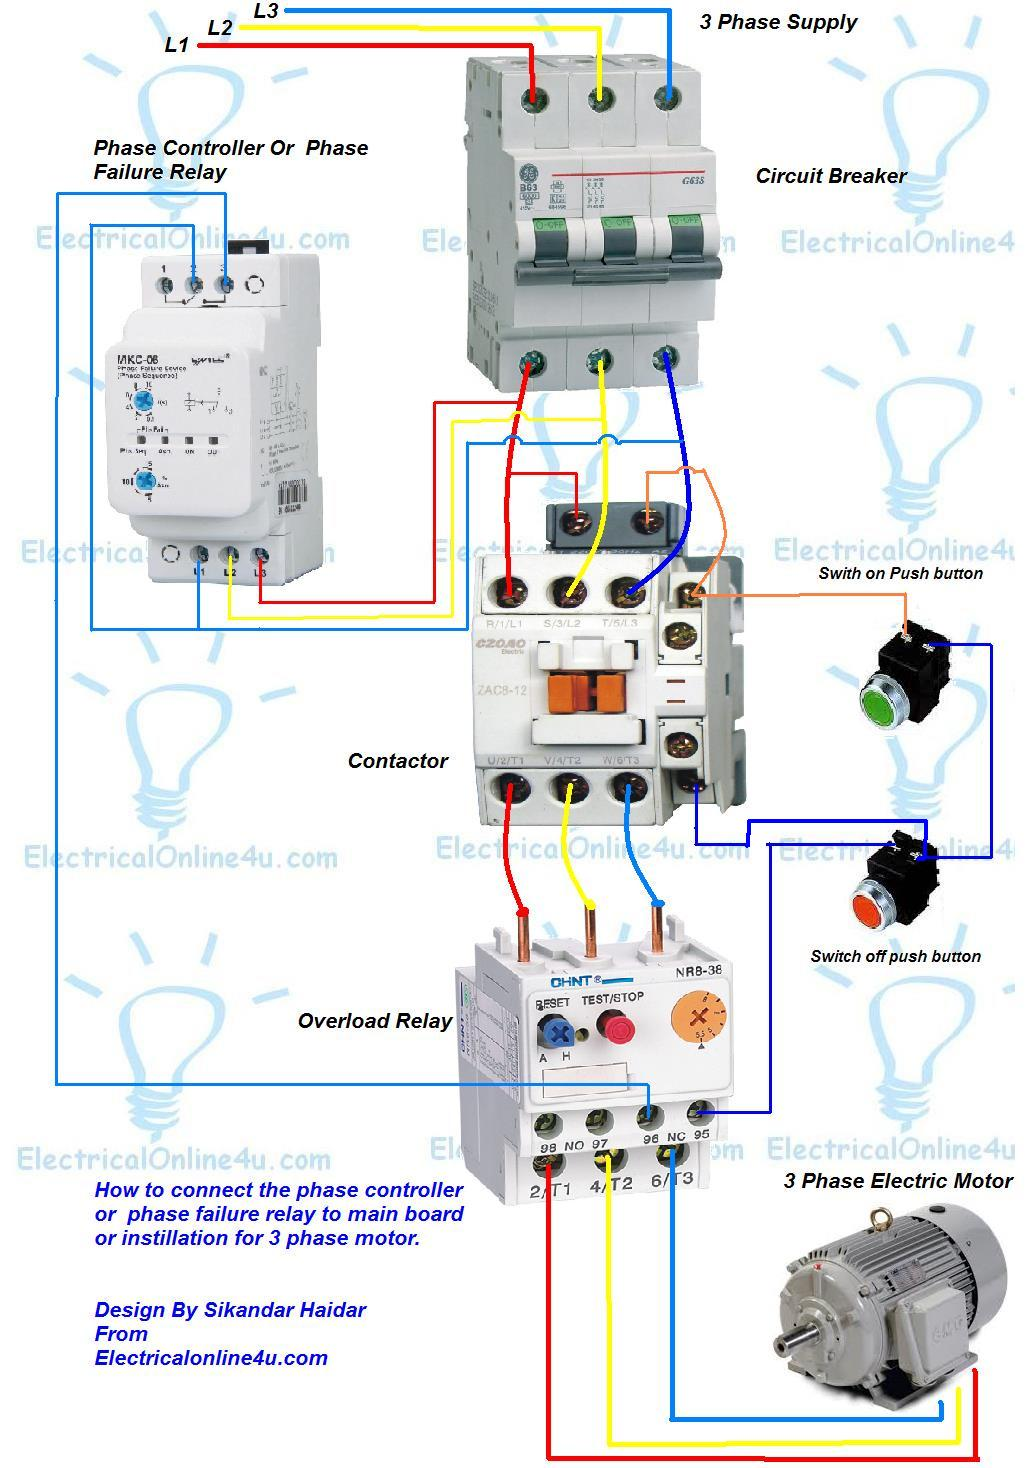 95 S10 Wiring Harness Diagram further Pneumatic Conveyor Snpt2012 further 11 additionally Switch Wiring Diagram Mon And Neutral additionally Best Windows 7 Win Key Shortcuts. on 4 way switch diagram